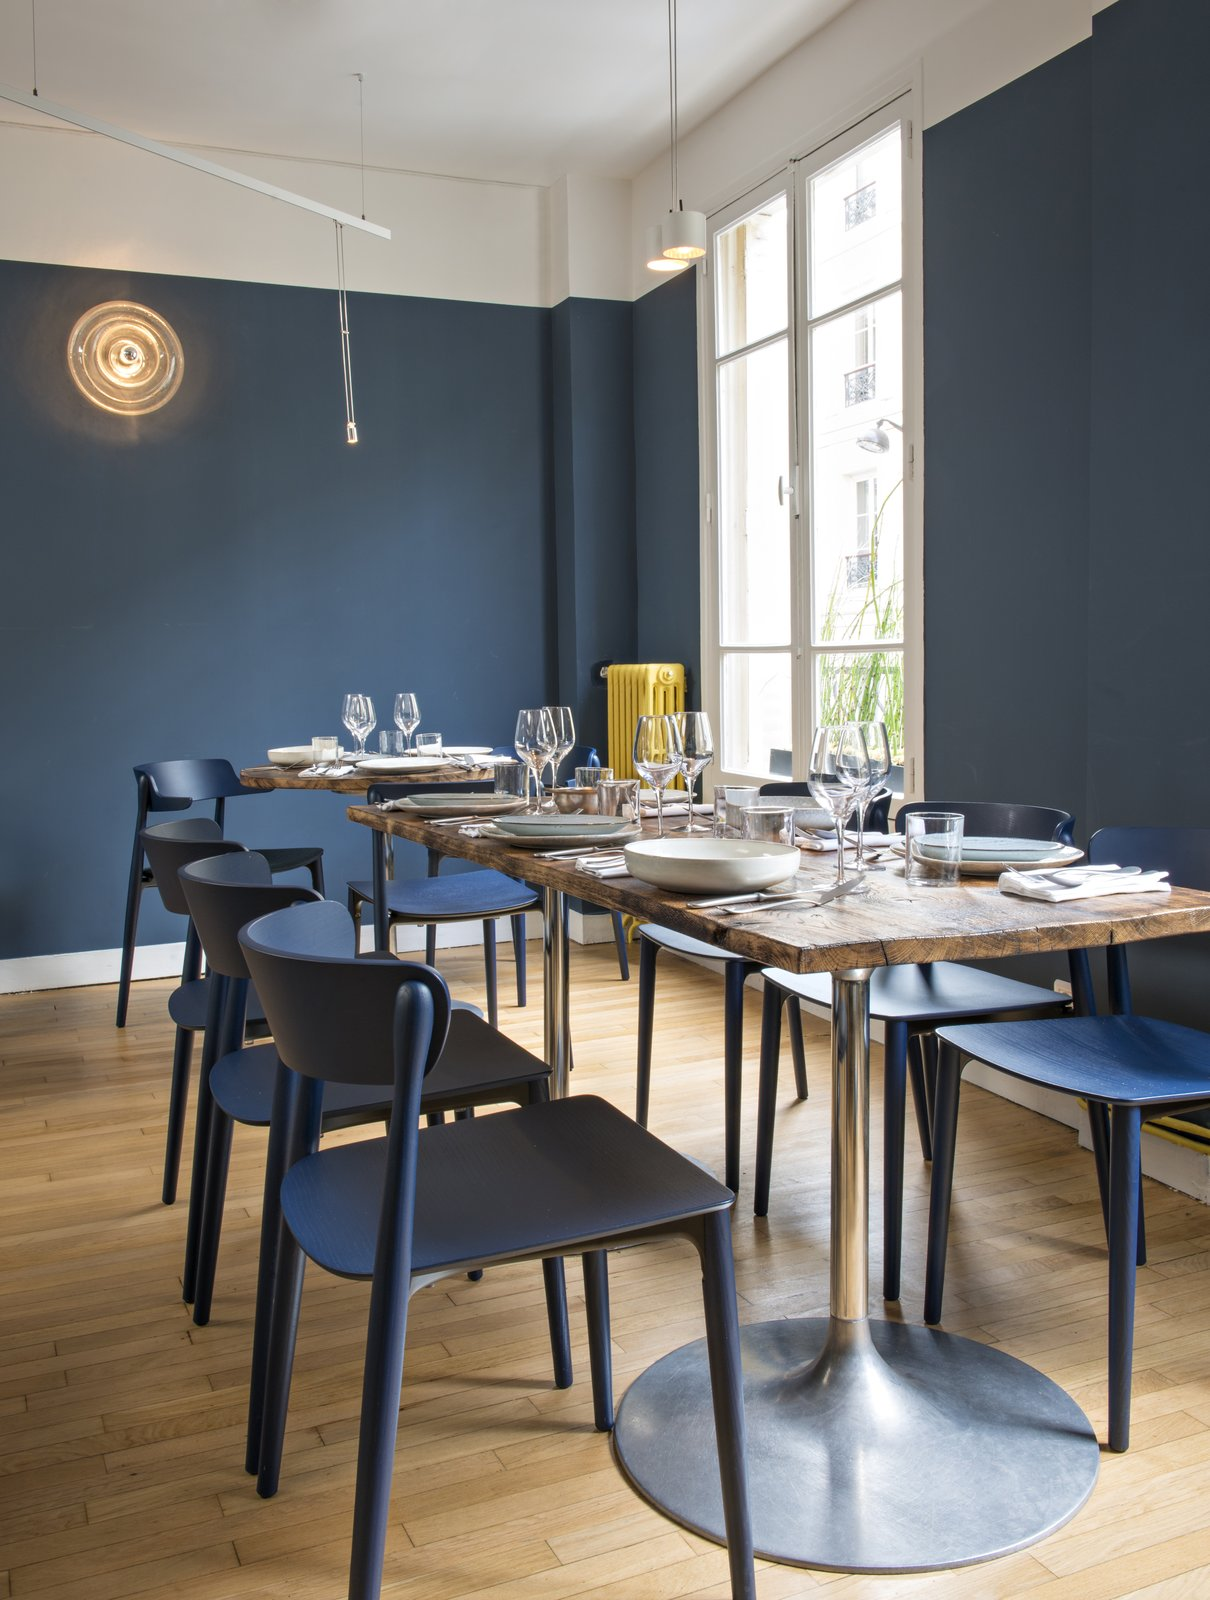 Sixty-five seats are accommodated between Belle Maison's two floors.  Photo 6 of 6 in A Parisian Seafood Restaurant, Swimming in Shades of Blue